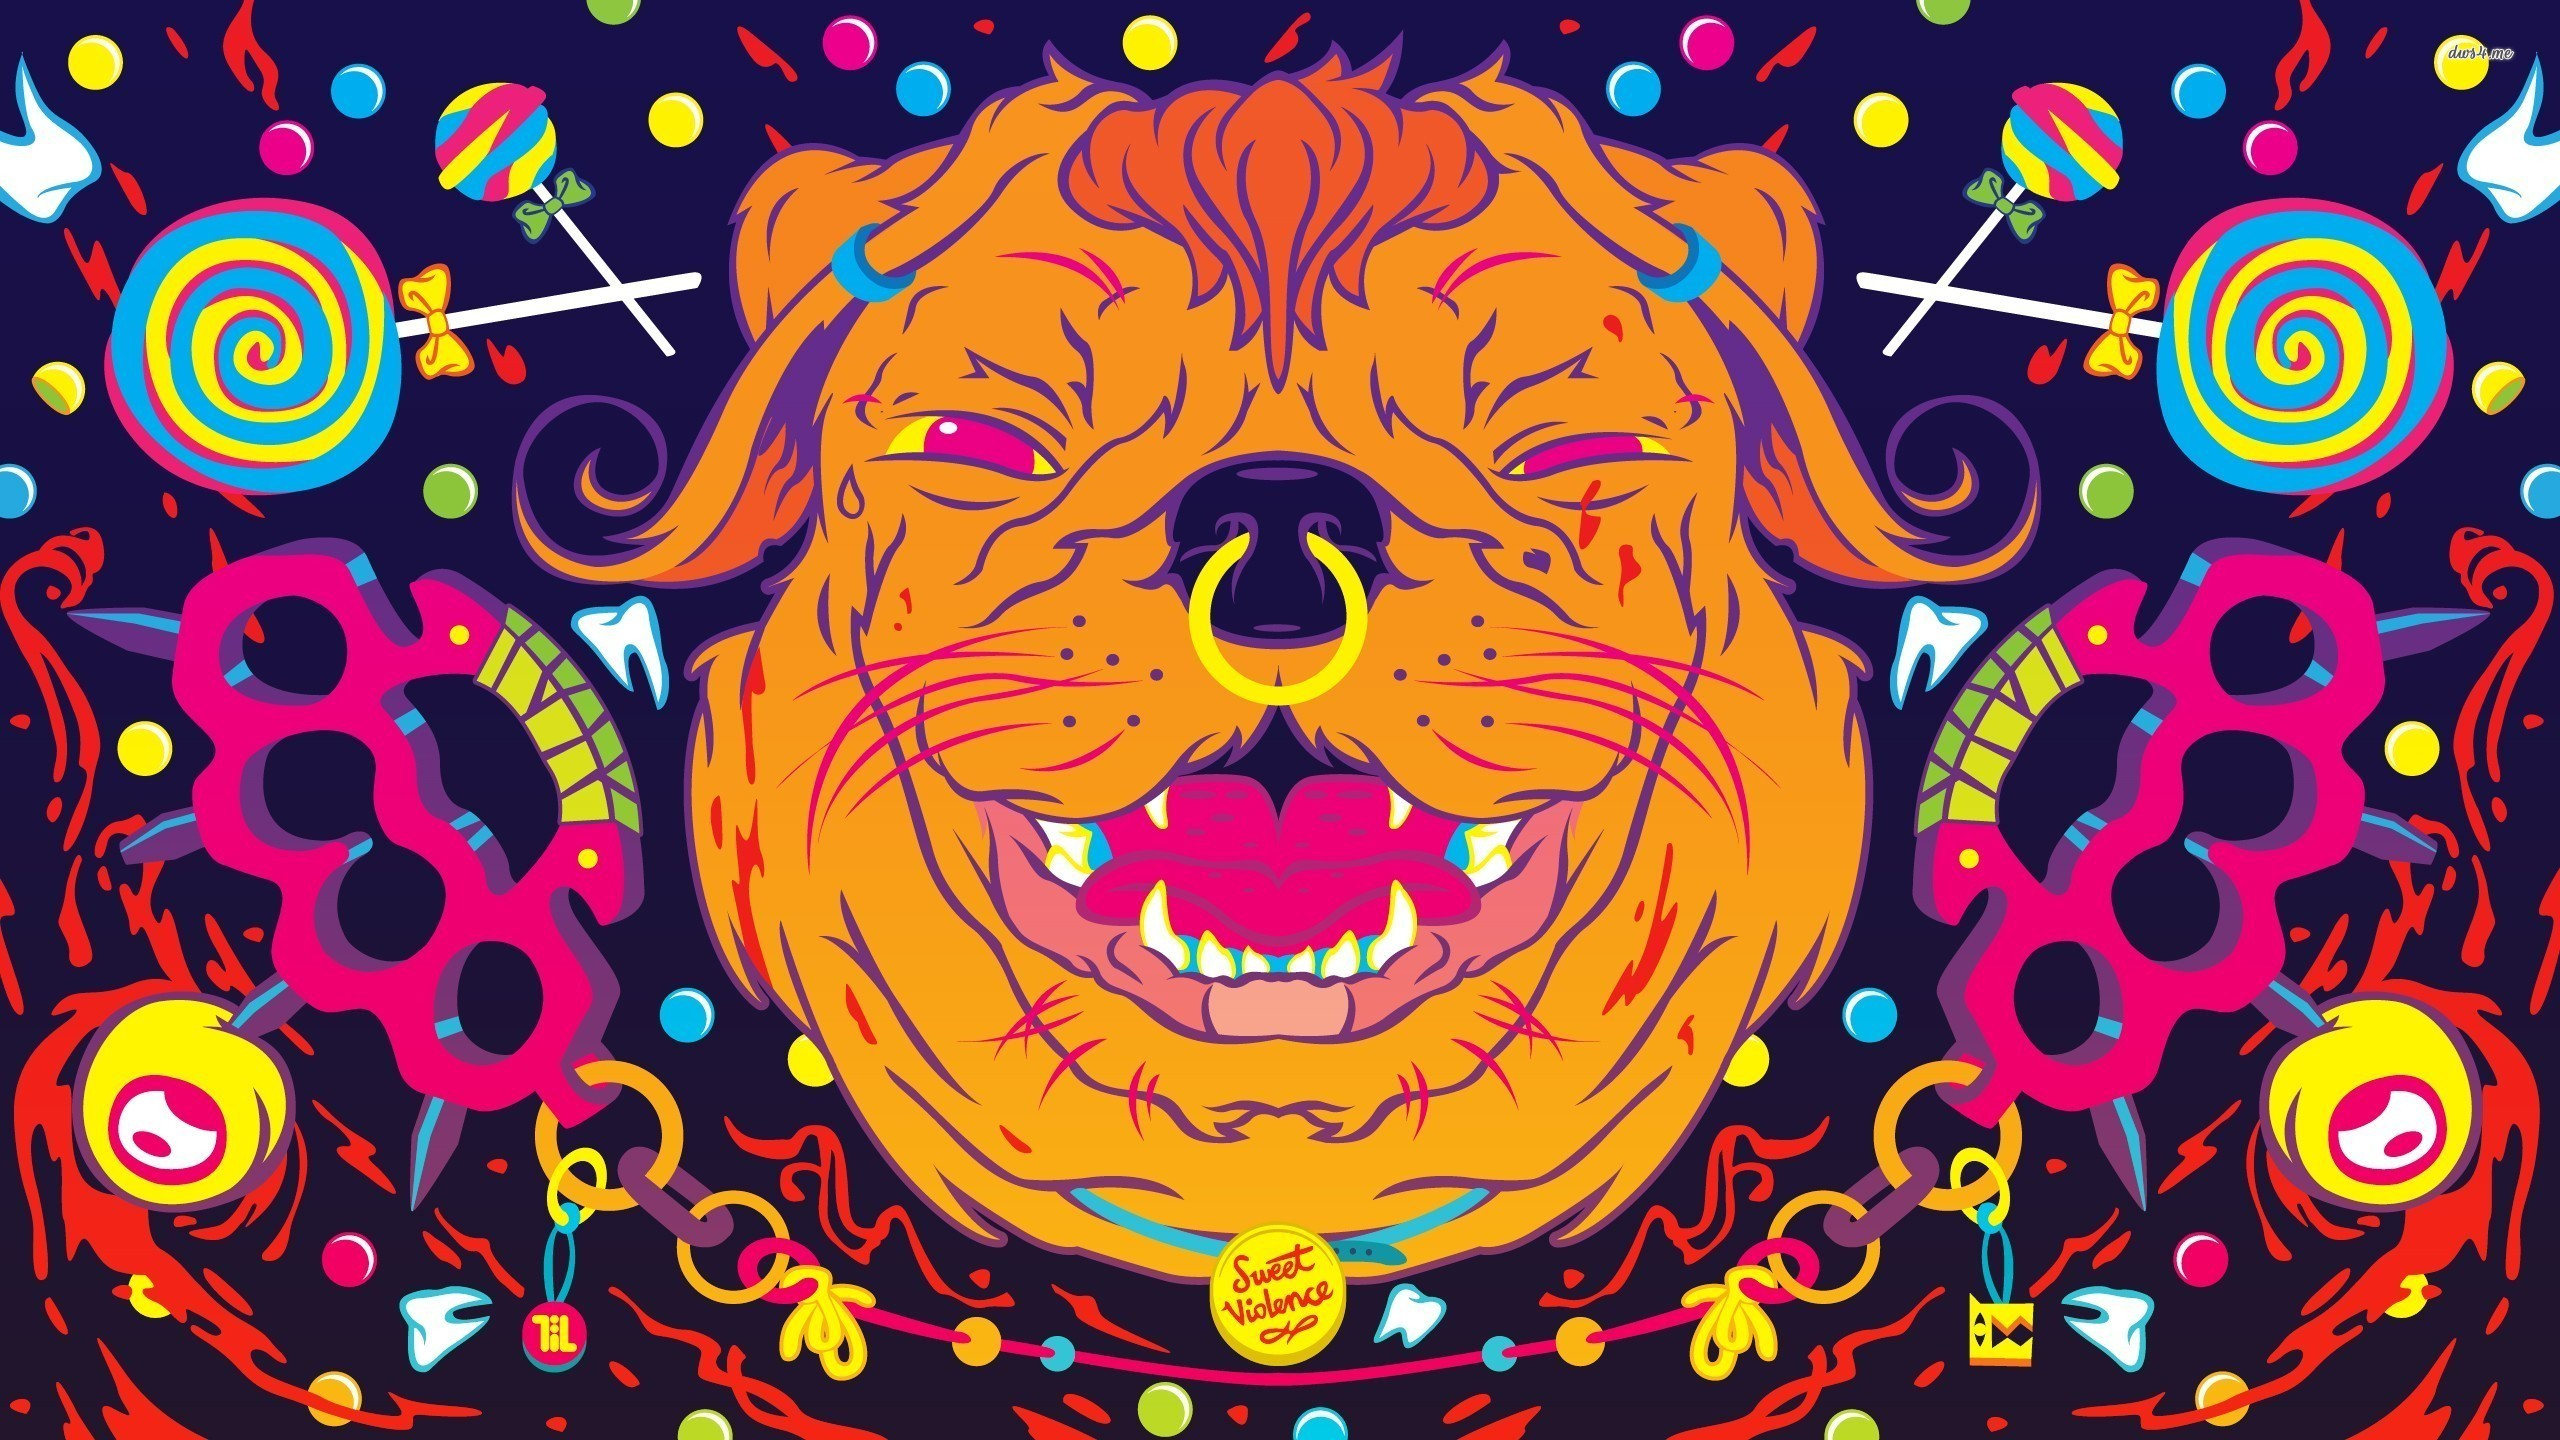 Res: 2560x1440, ... Psychedelic dog wallpaper  ...